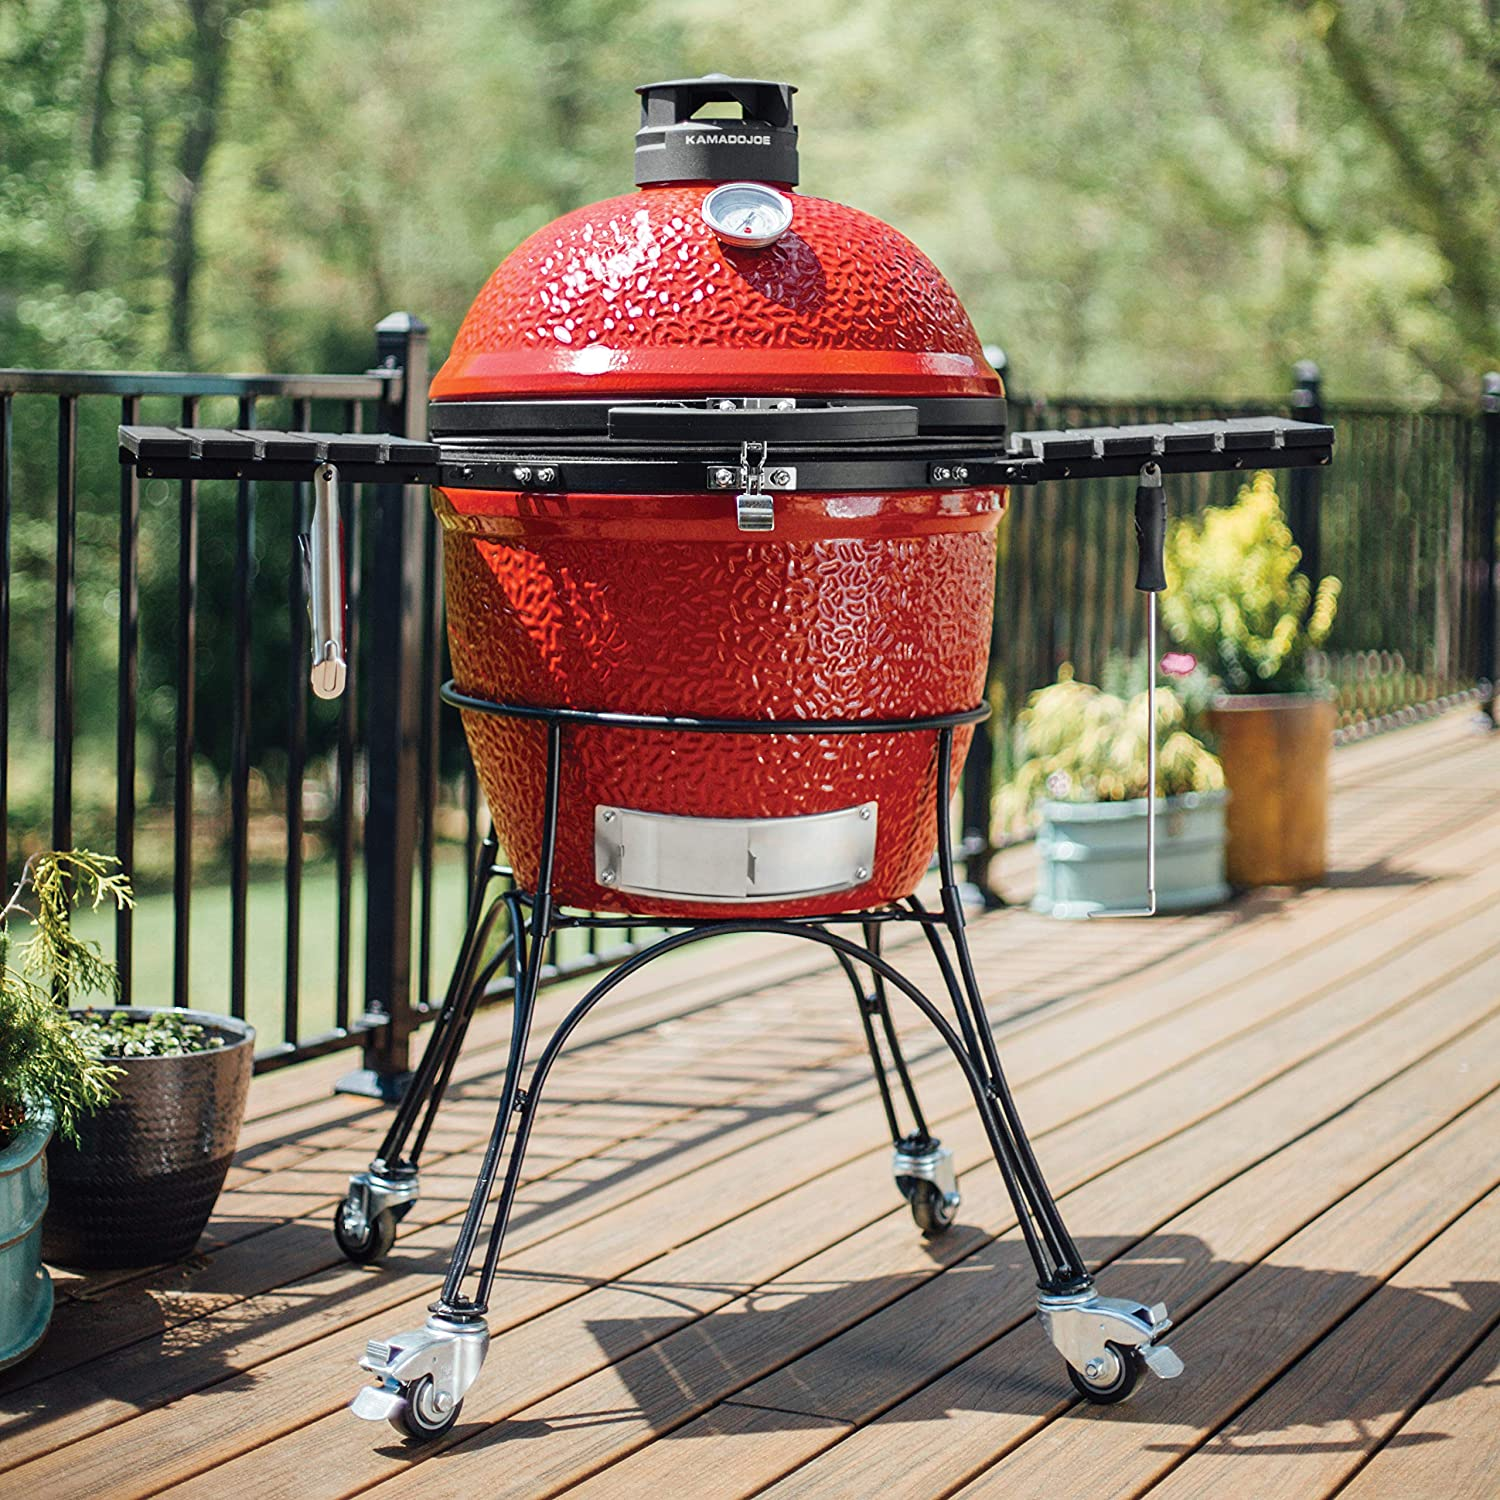 Best charcoal grill for smoking AND grilling- Kamado Joe Classic II in the garden